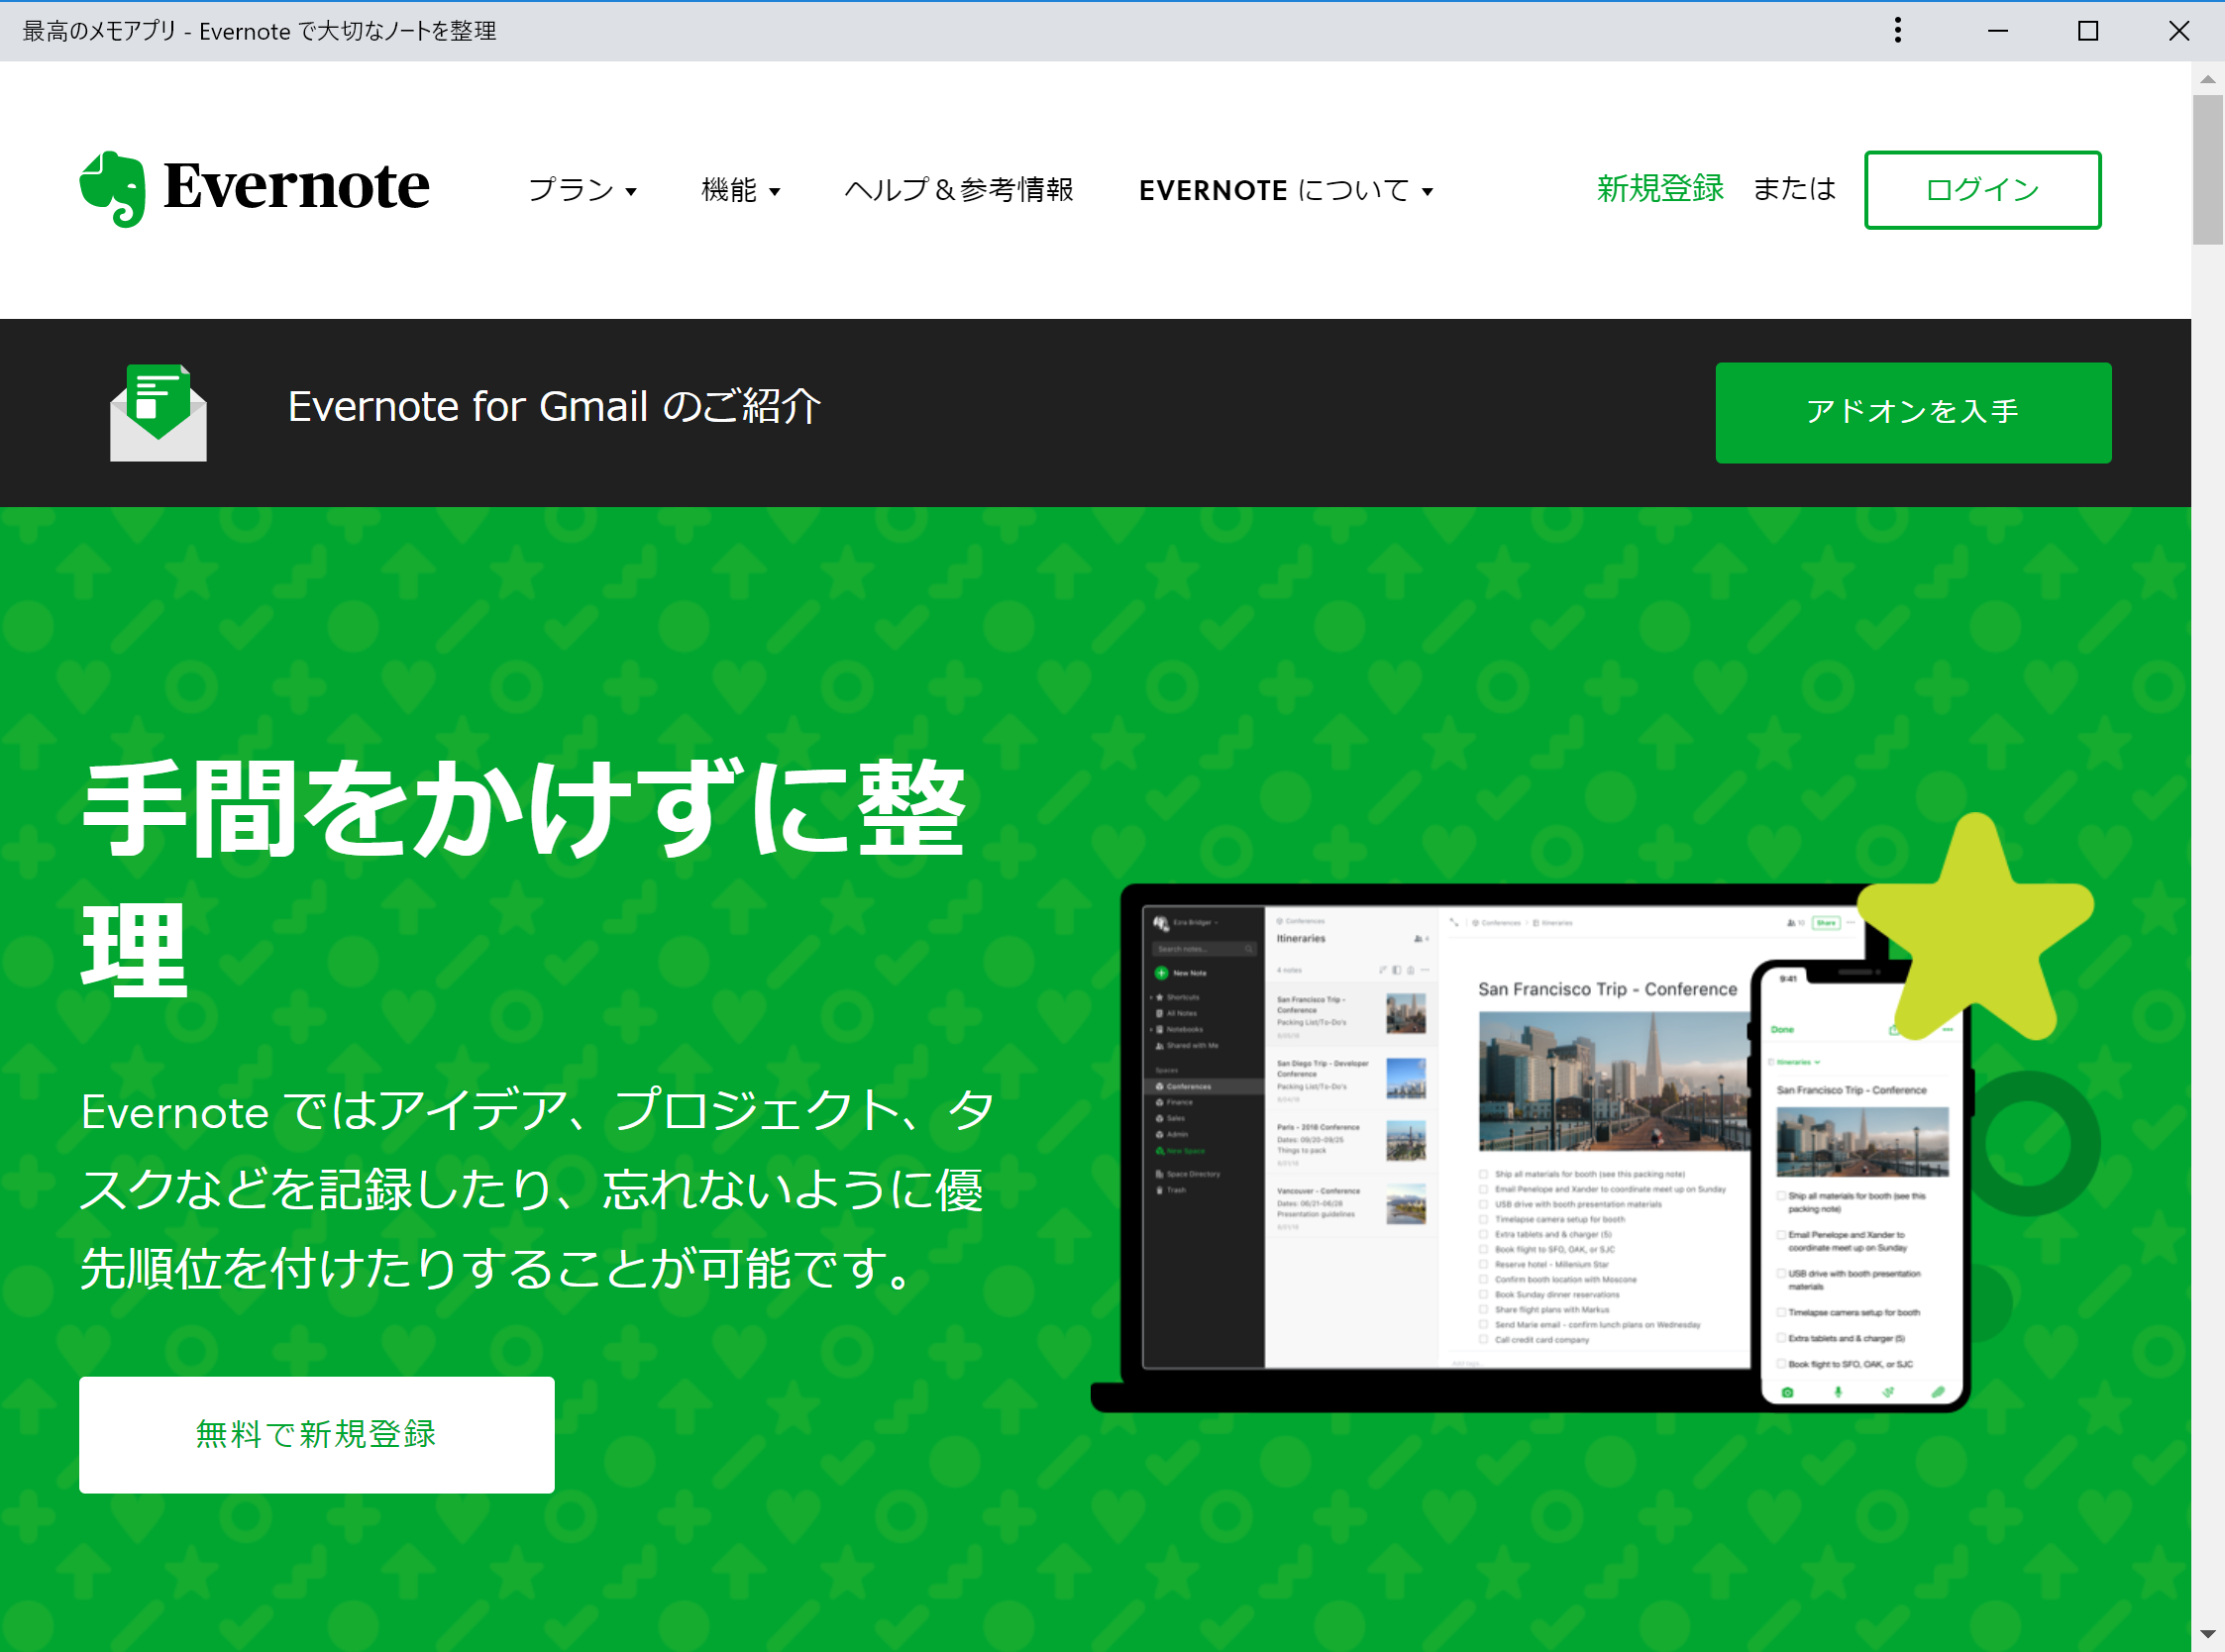 ChromeApps上でのEvernote